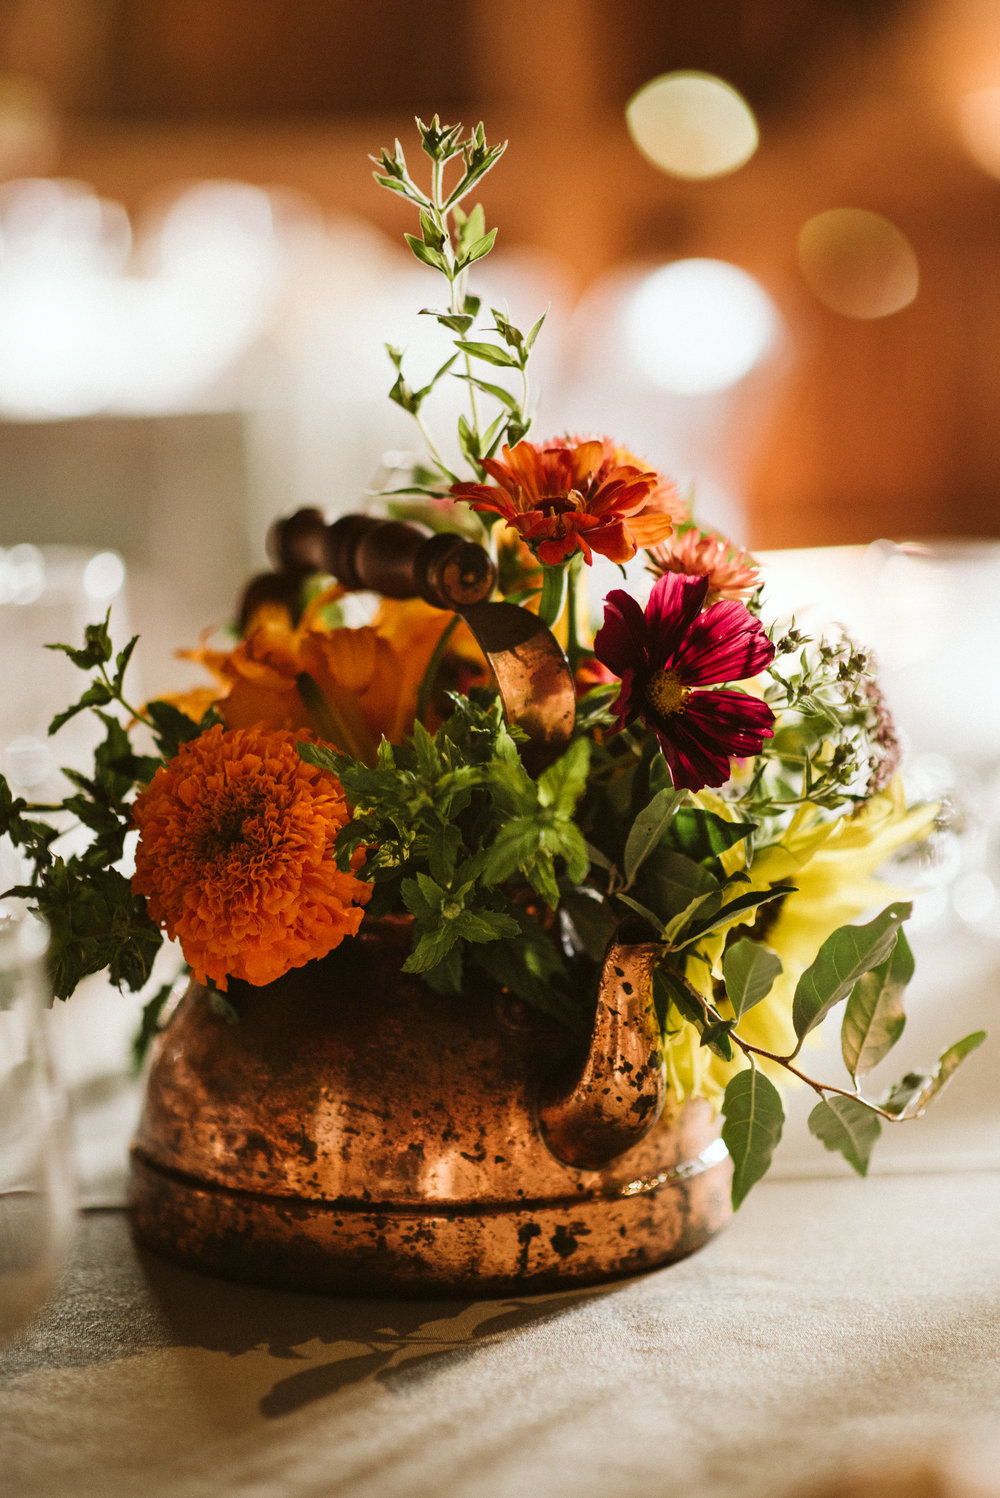 Rocklands Farm, Maryland, Intimate Wedding, Baltimore Wedding Photographer, Sungold Flower Co, Rustic, Romantic, Barn Wedding, Centerpiece, Orange and Maroon flowers in Copper Teapot